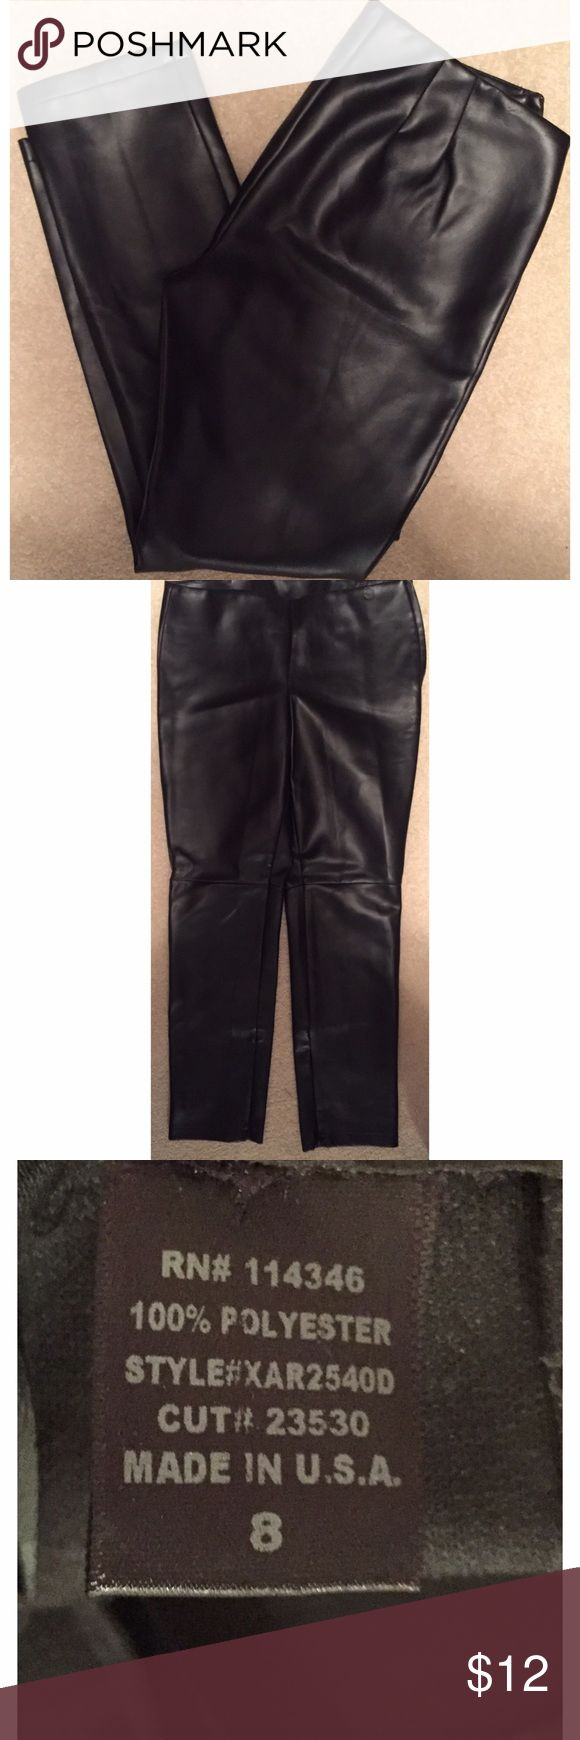 Sexy Black Faux Leather Pants New without Tags, these hot faux leather pants will complement any sexy top for a night a the club! Pants